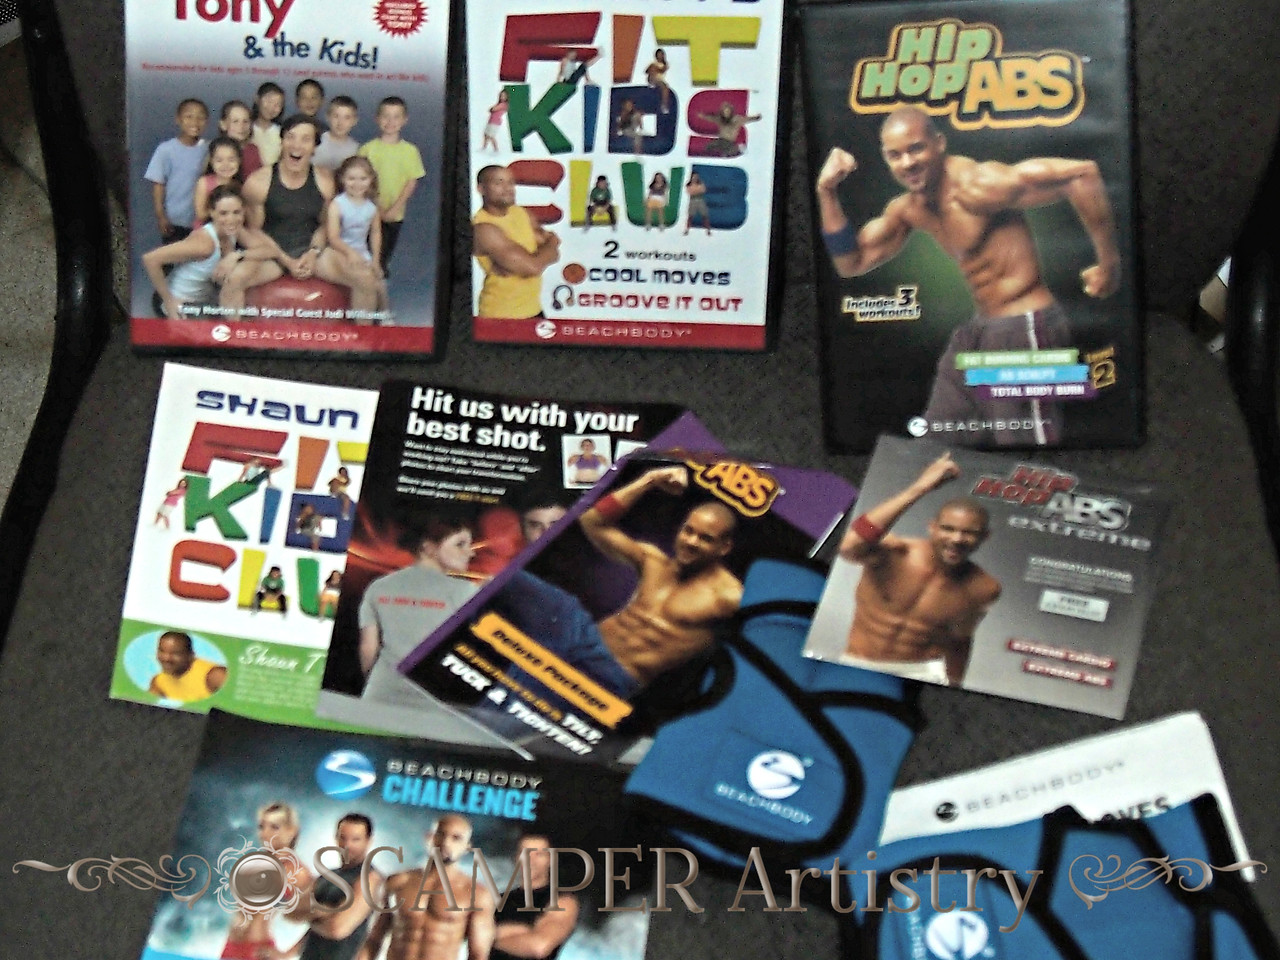 Hip Hop Abs came in the mail today!